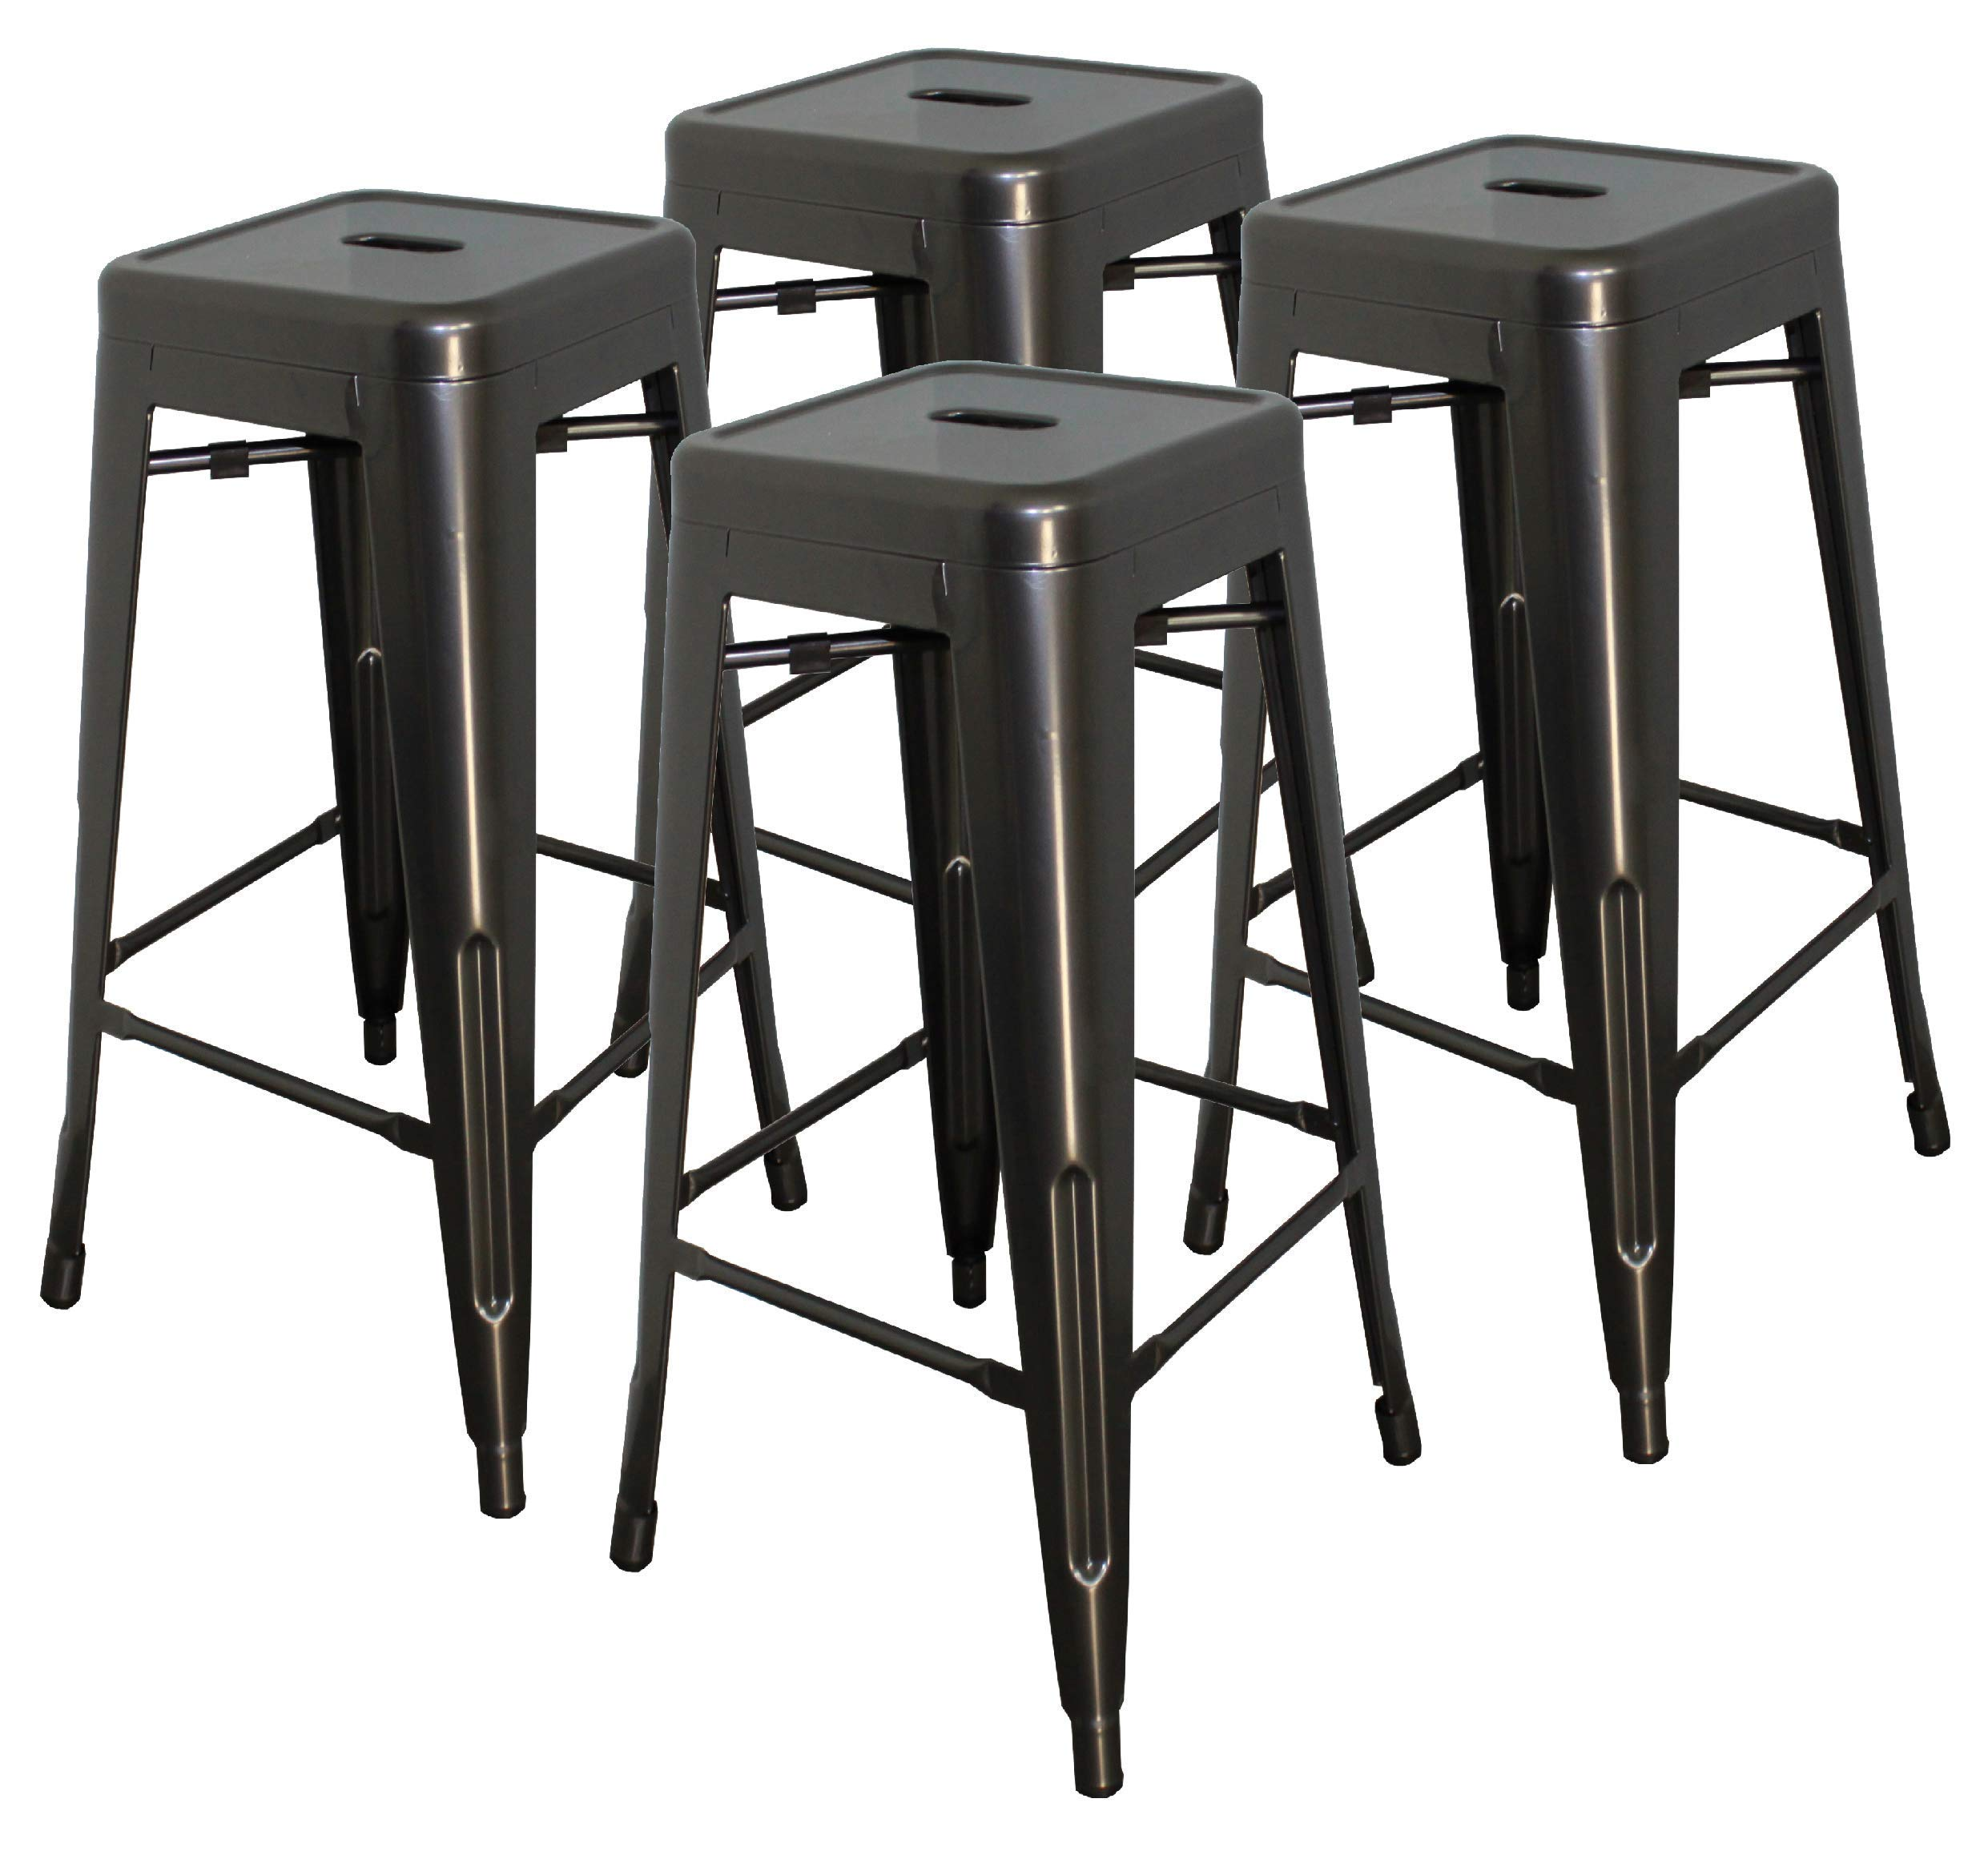 Hercke 30'' Stacking Metal Bar Stool (4 Pack) Steel - Gunmetal Gray - Kitchen Island Counter Industrial Indoor Outdoor Backless Chair   by SafeRacks (30'')